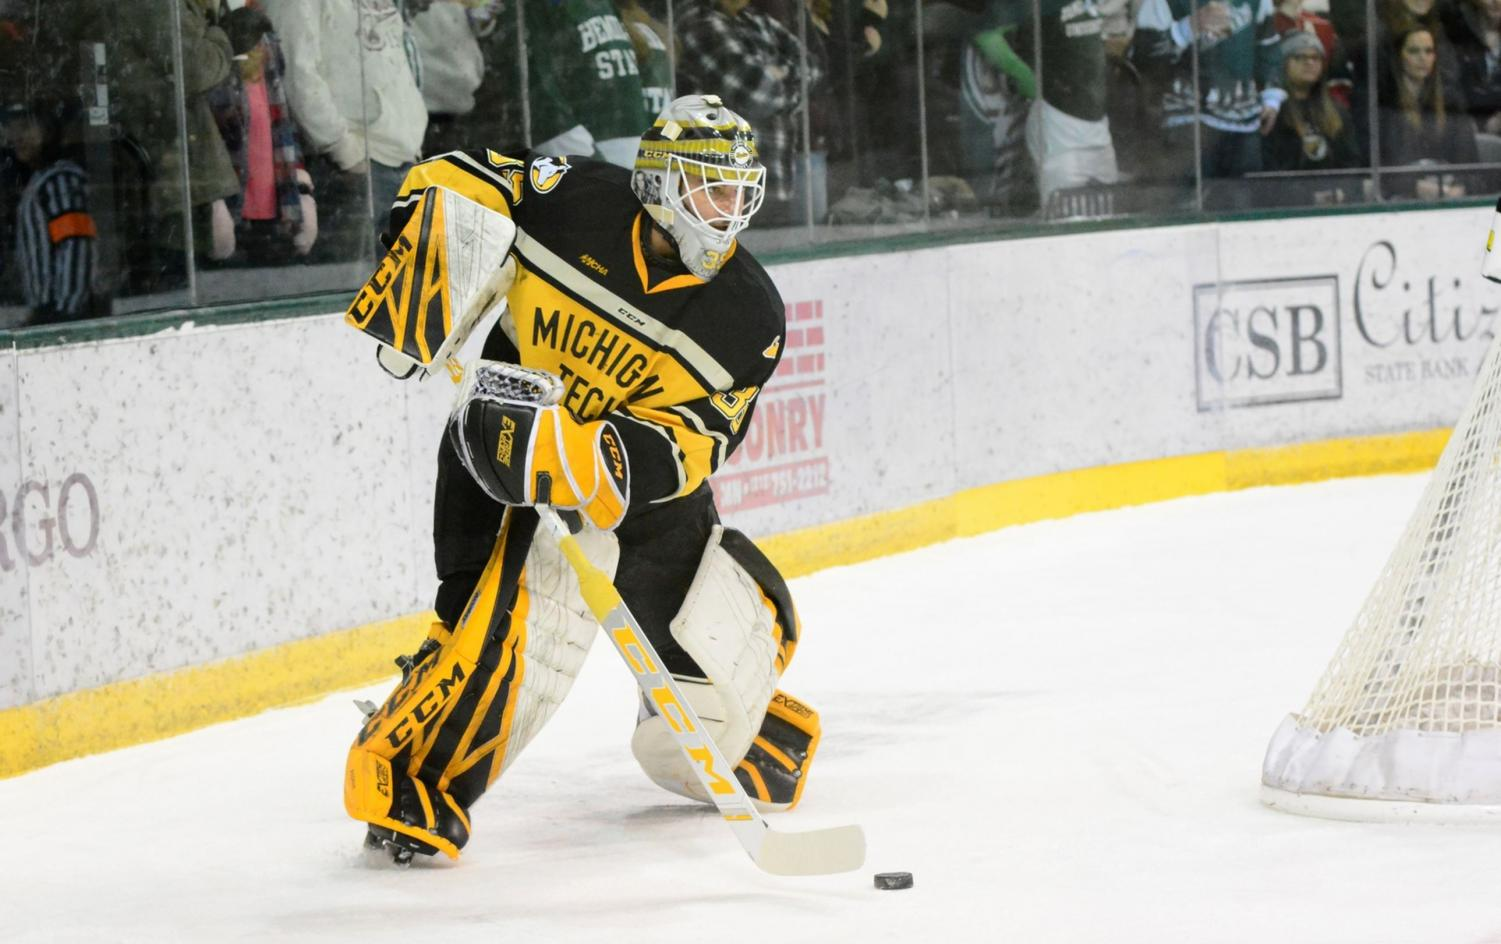 Robbie Beydoun played the goalie during the game against Bemidji State.